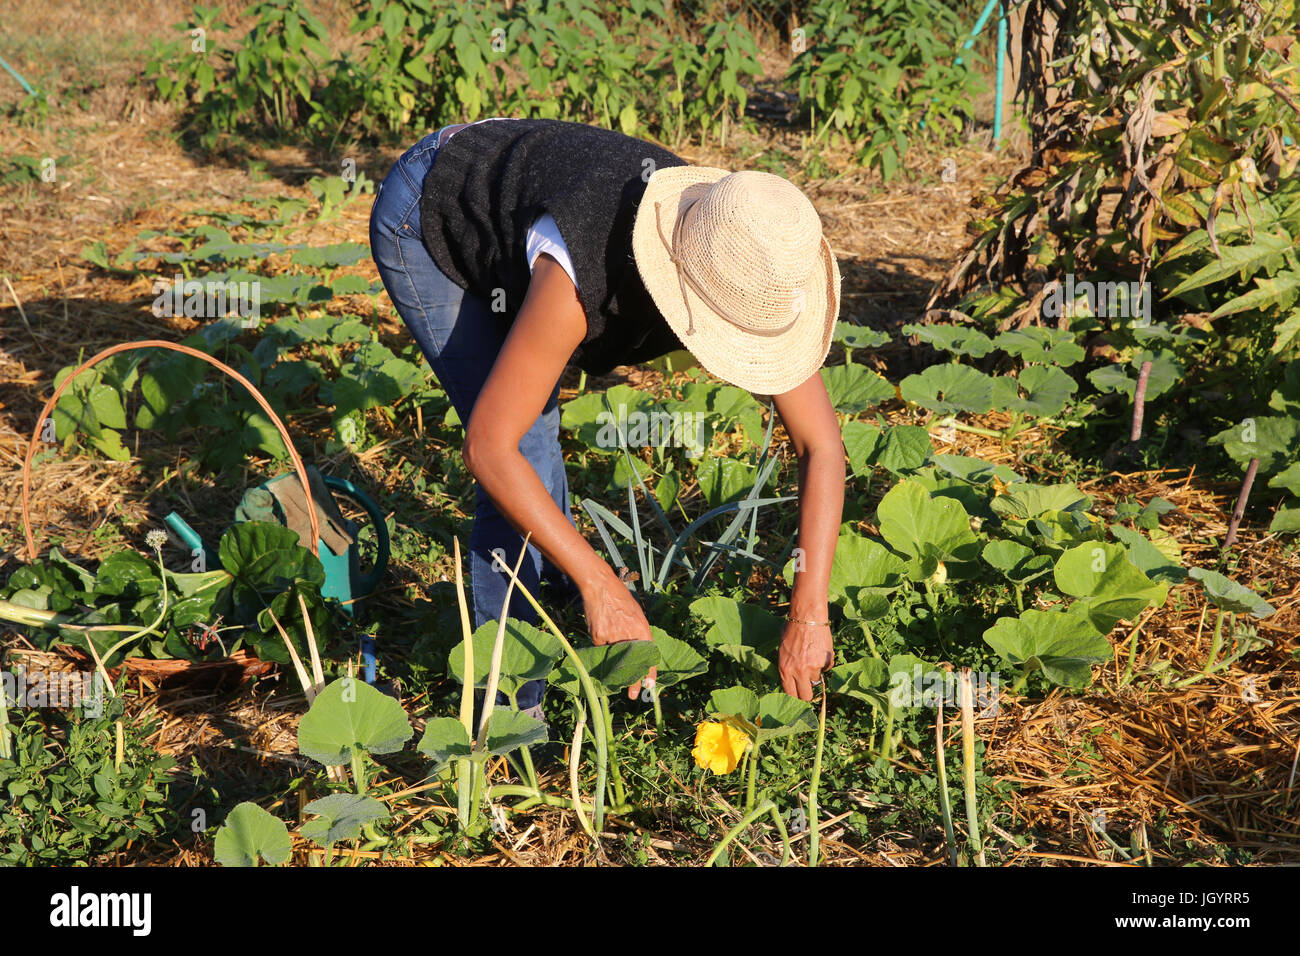 Woman working in her vegetable garden. France. - Stock Image